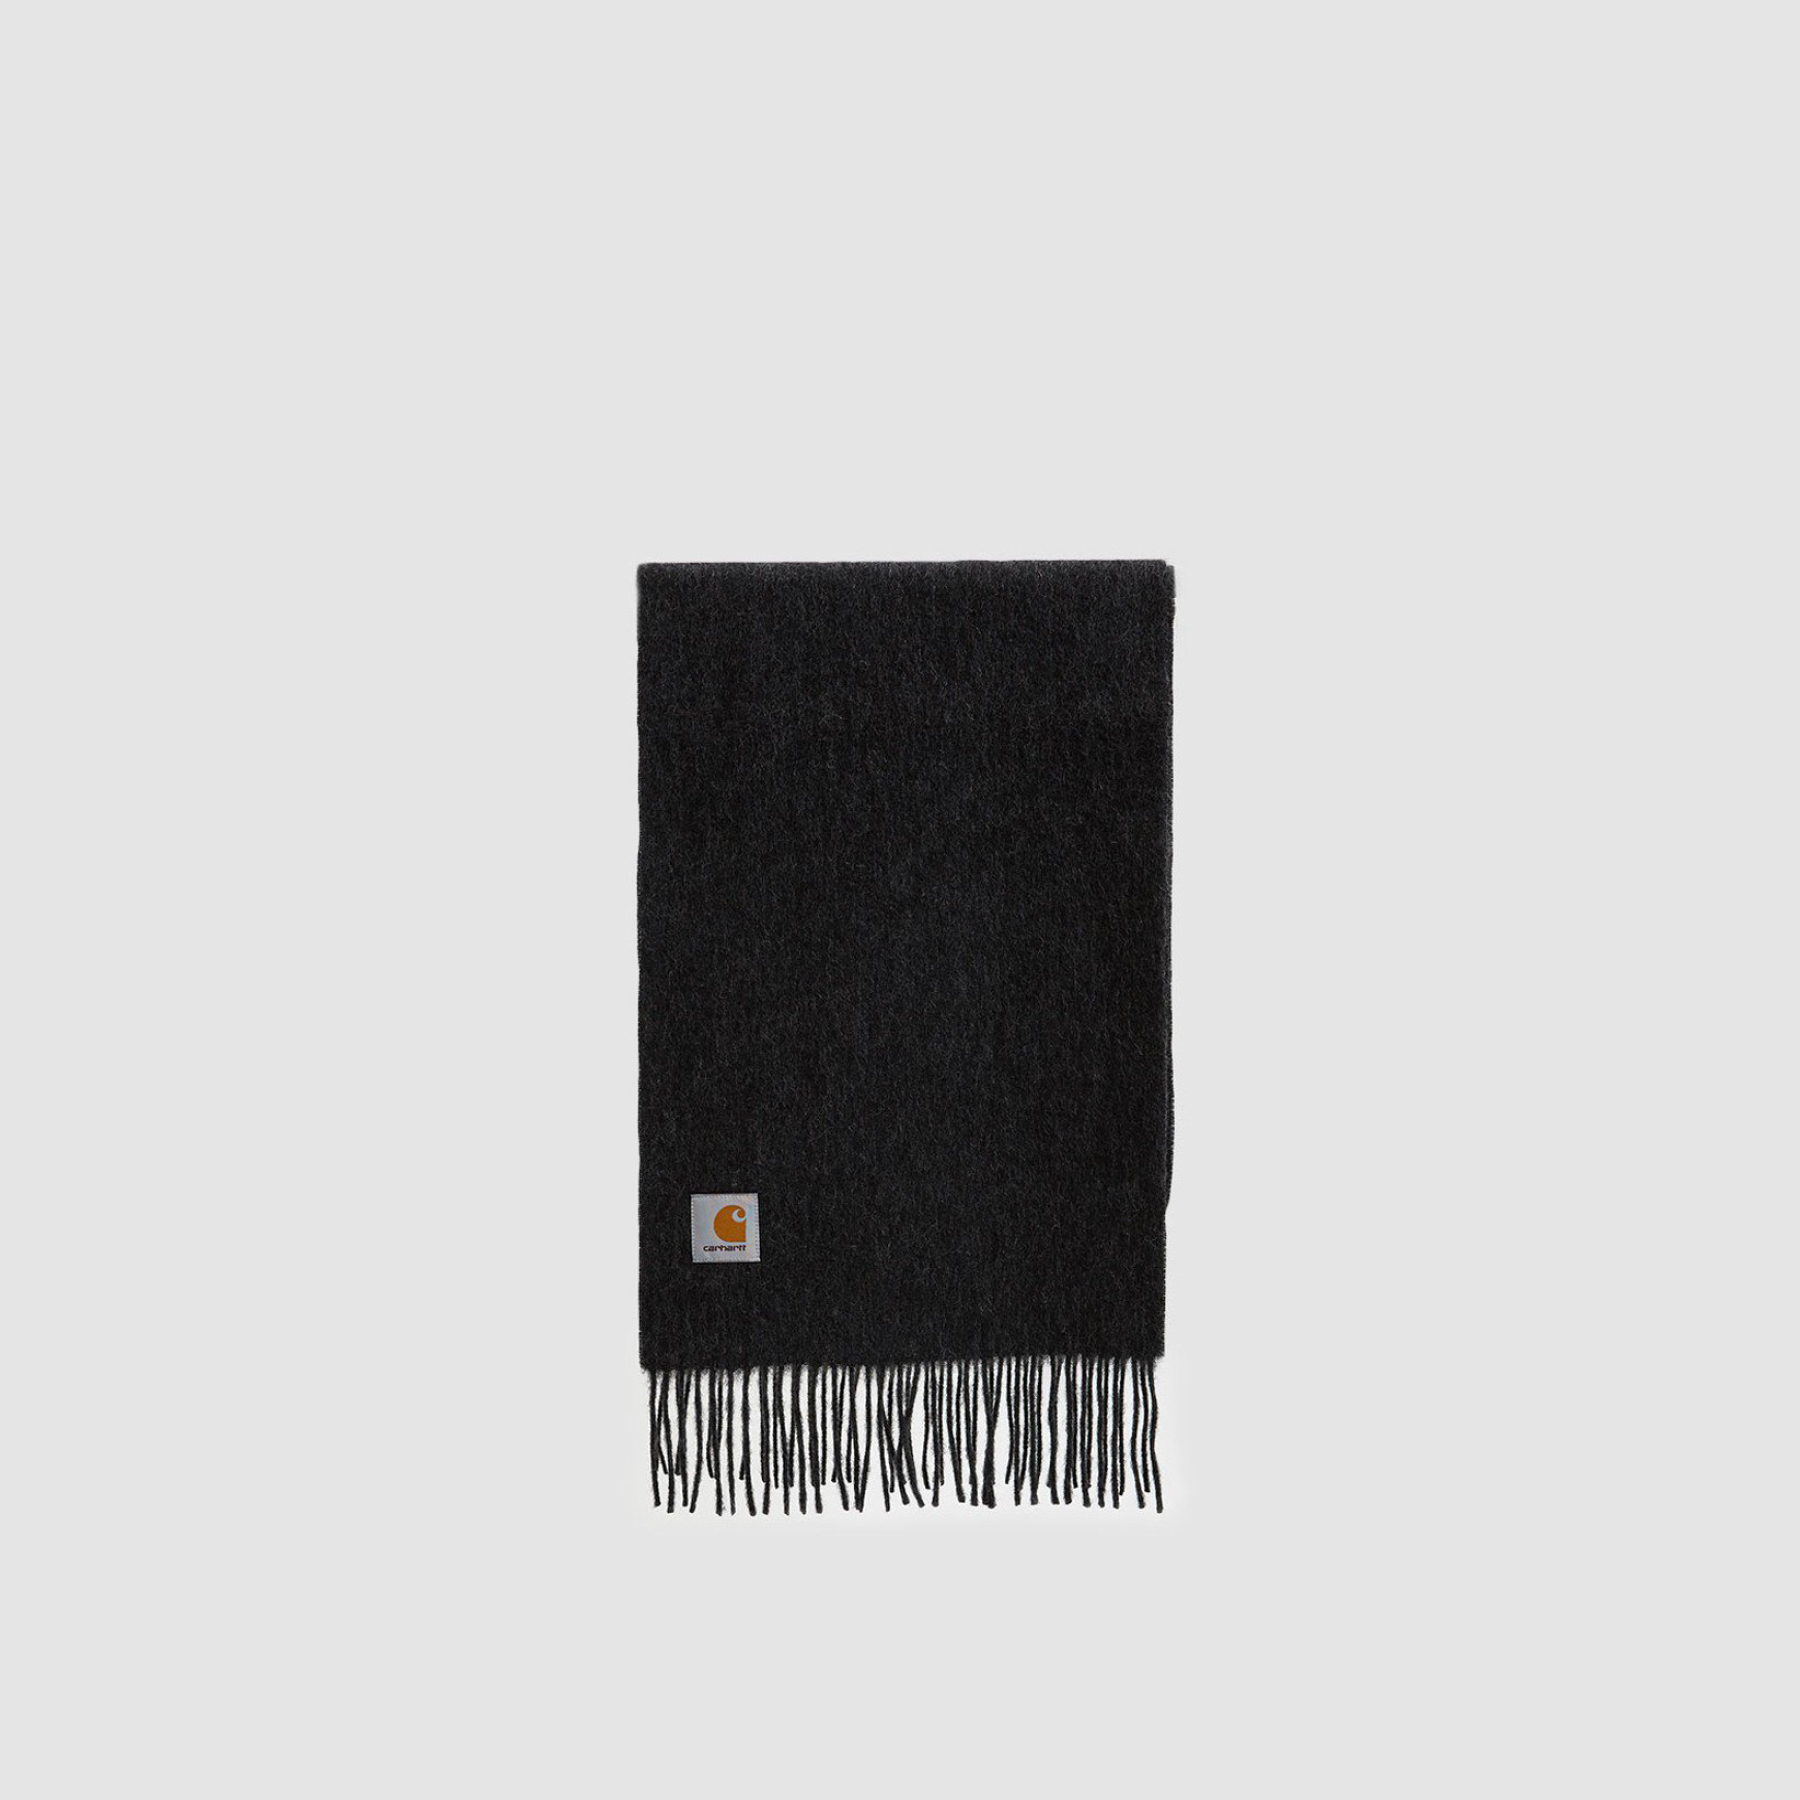 ALL-SORTS-OF-CARHARTT-SCARF